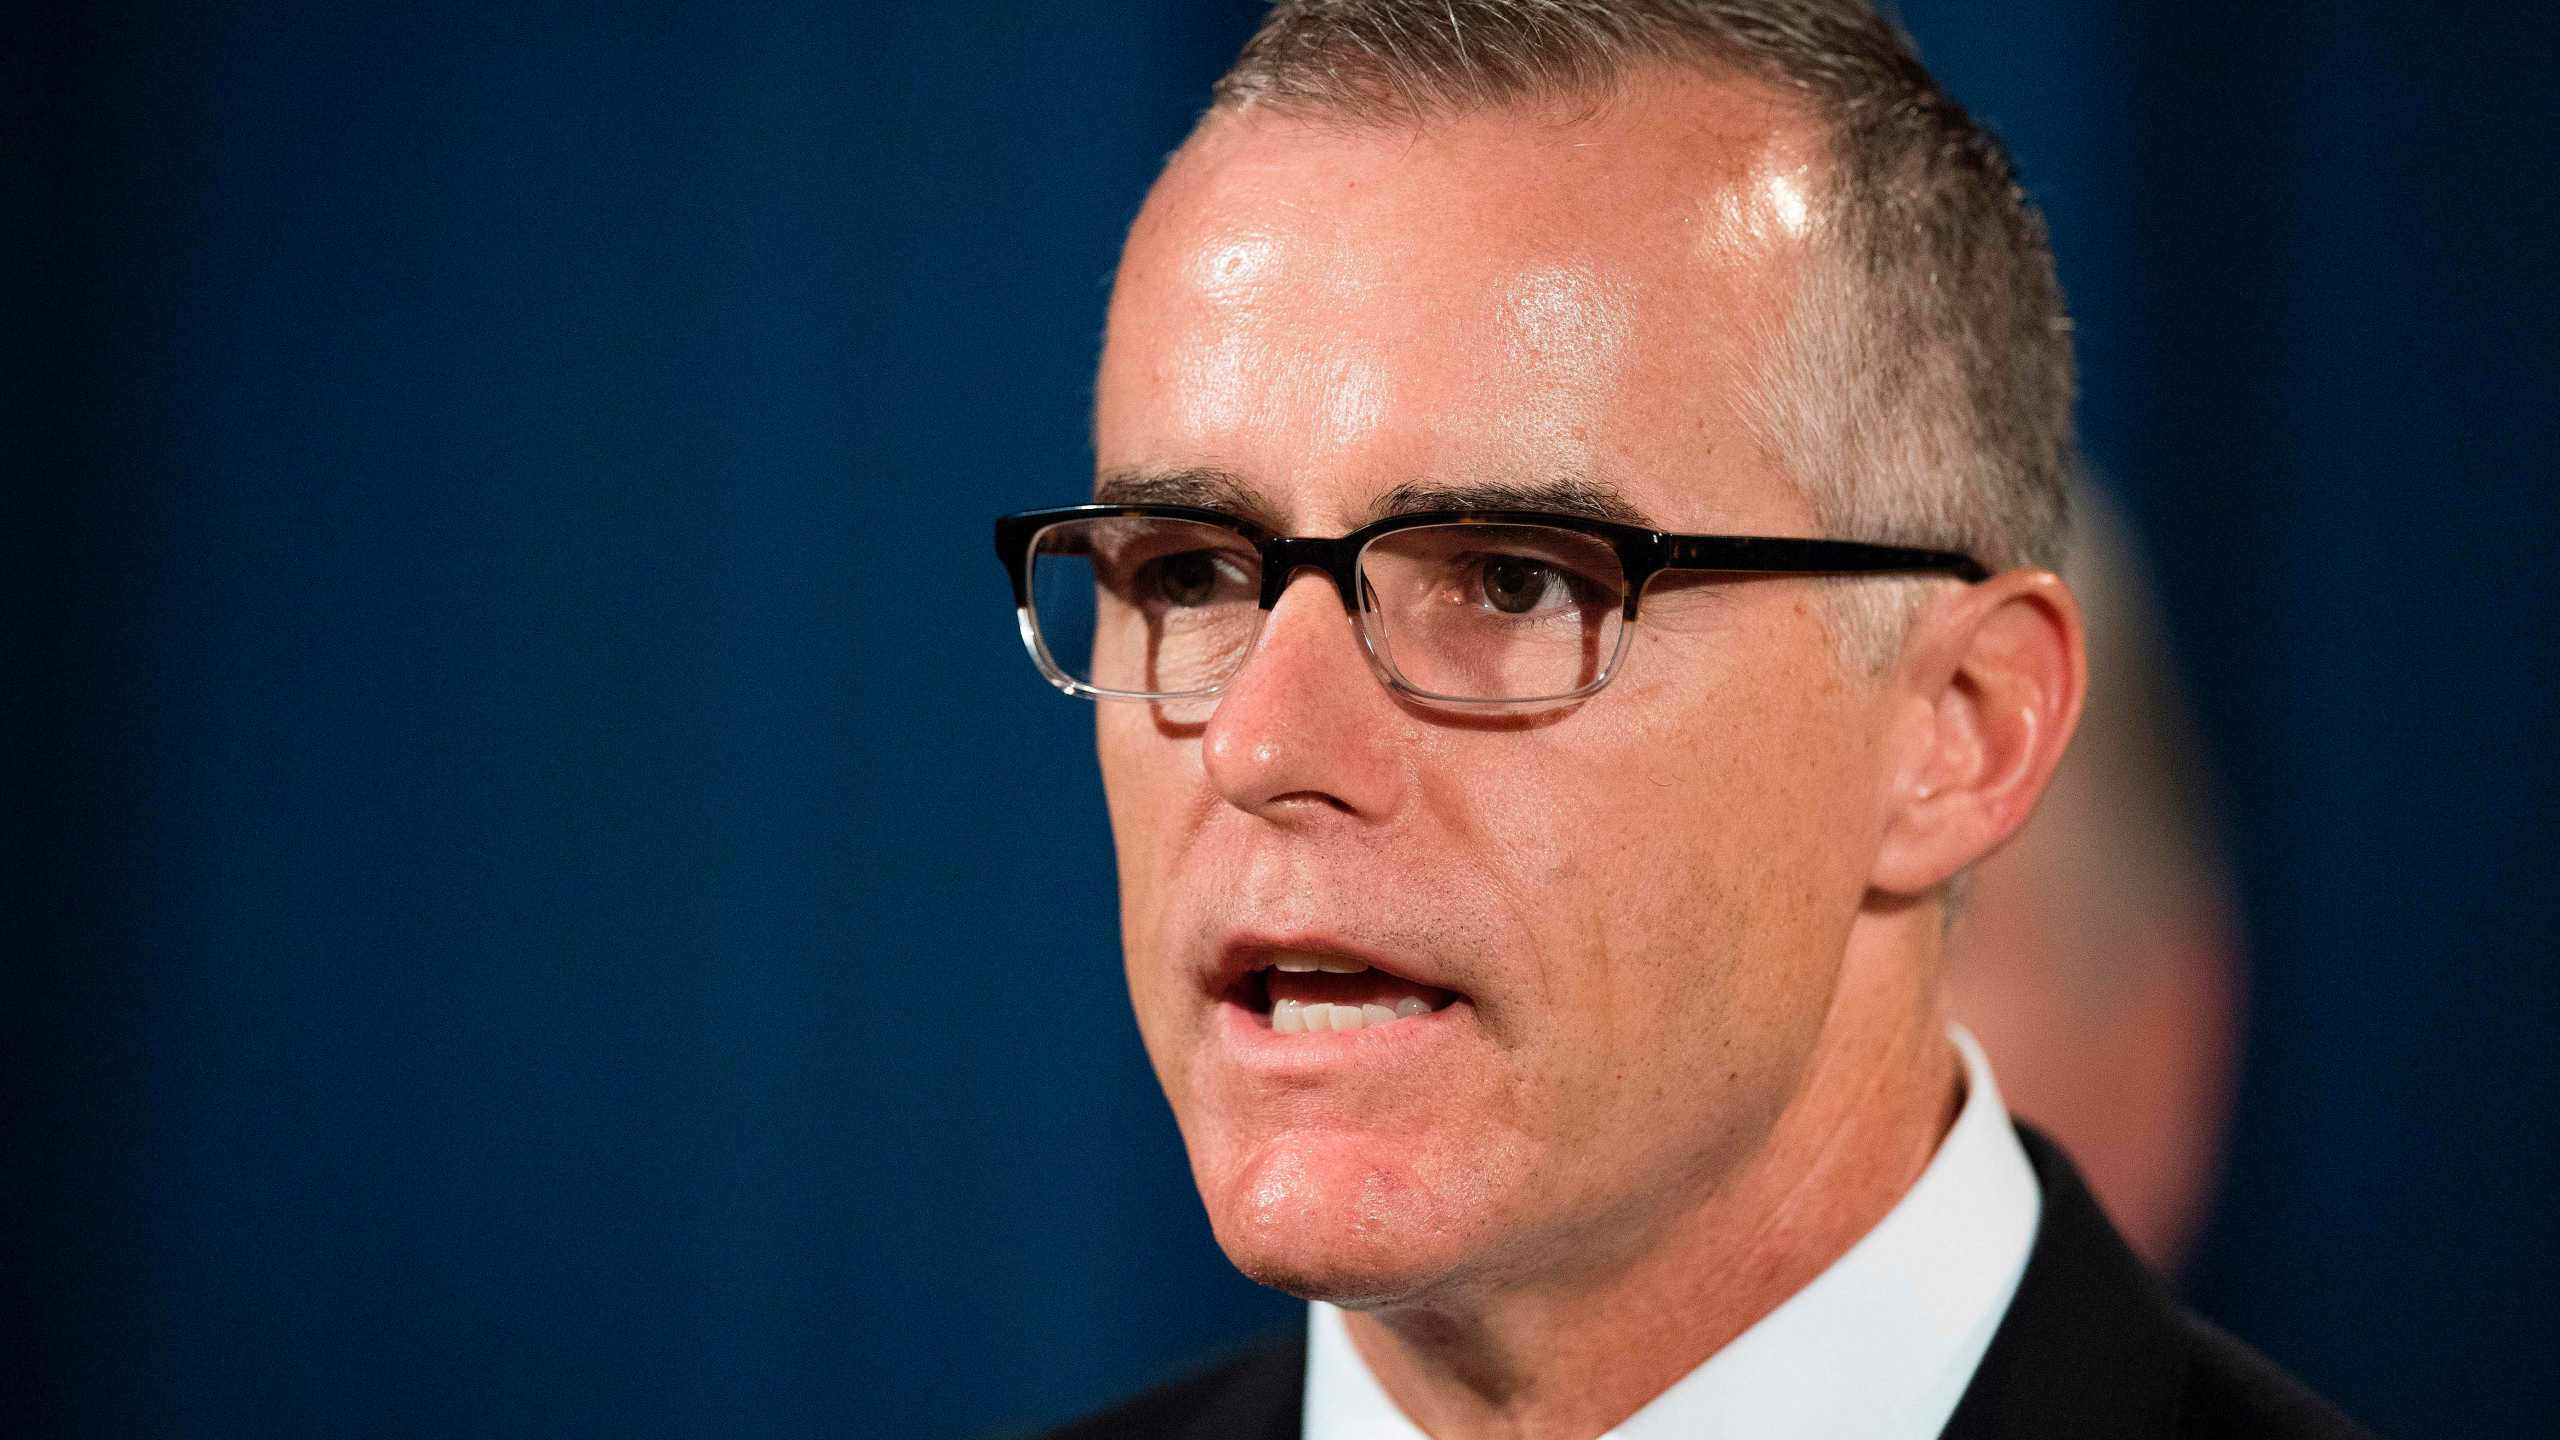 Acting Director of the Federal Bureau of Investigation (FBI) Andrew McCabe speaks during a press conference at the US Department of Justice in Washington, DC, on July 13, 2017. (Credit: JIM WATSON/AFP/Getty Images)